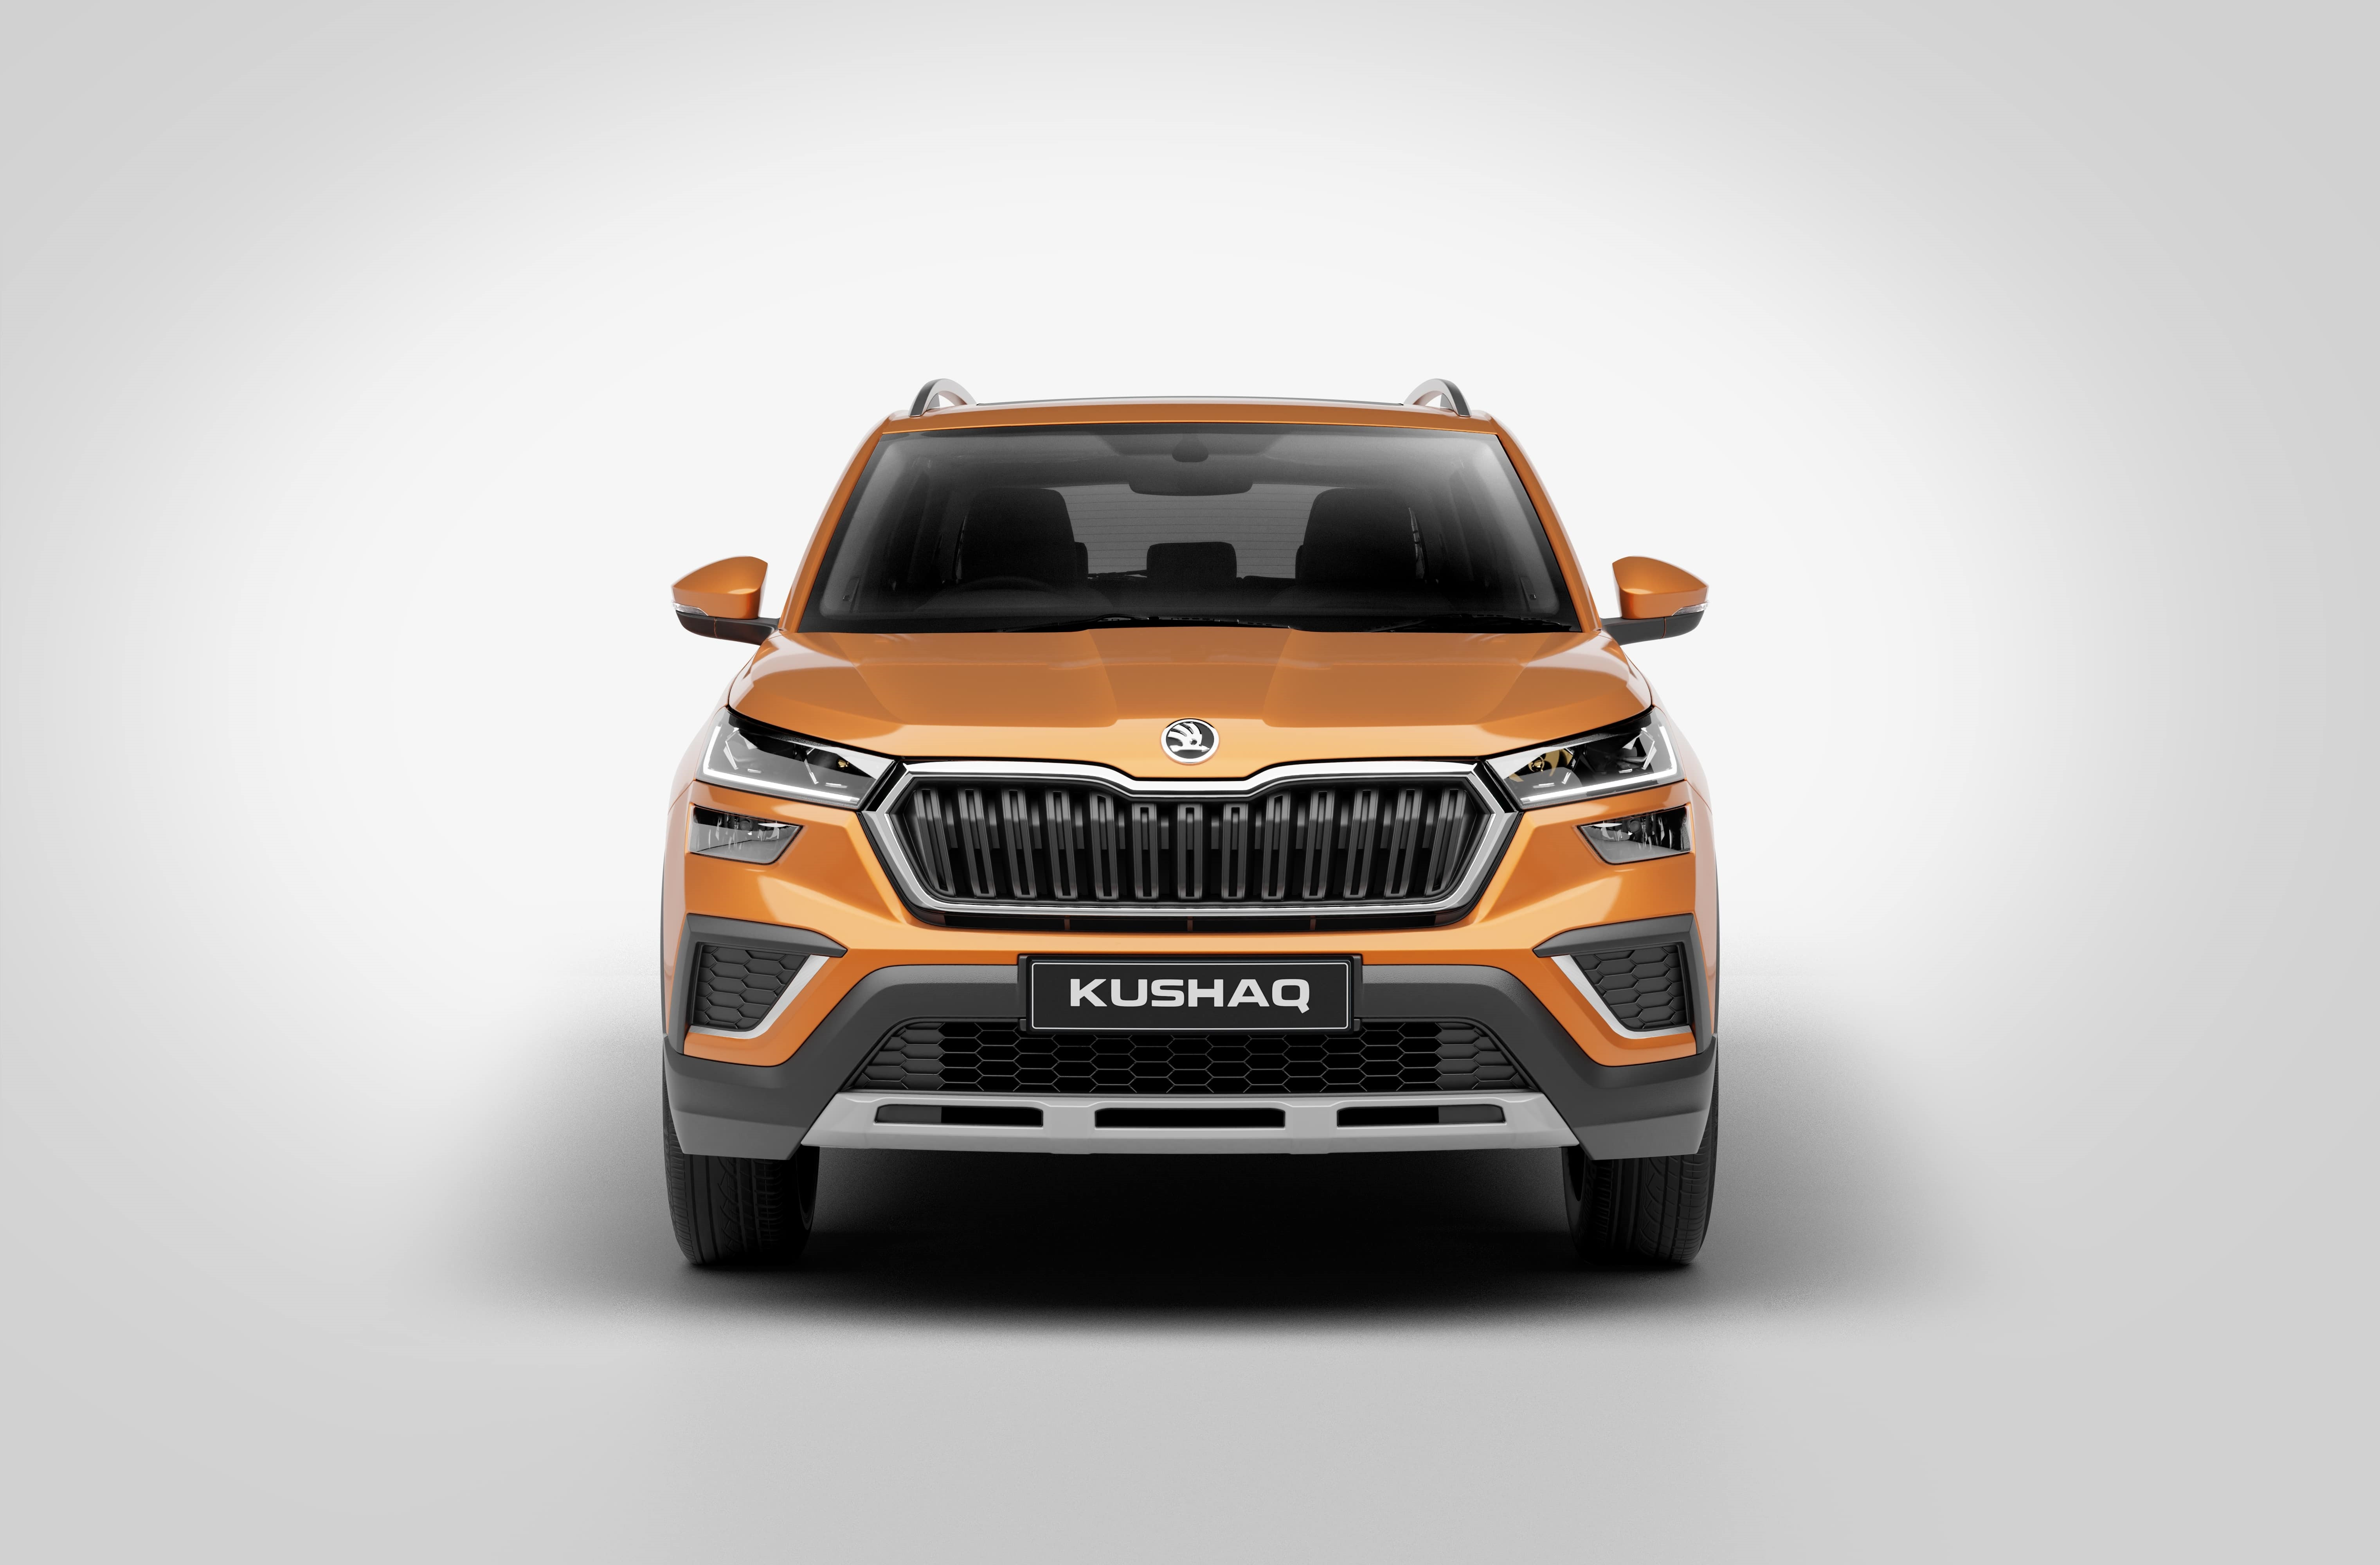 Skoda Kushaq AT to Offer 6 Airbags and TPMS for Rs 40,000 Extra